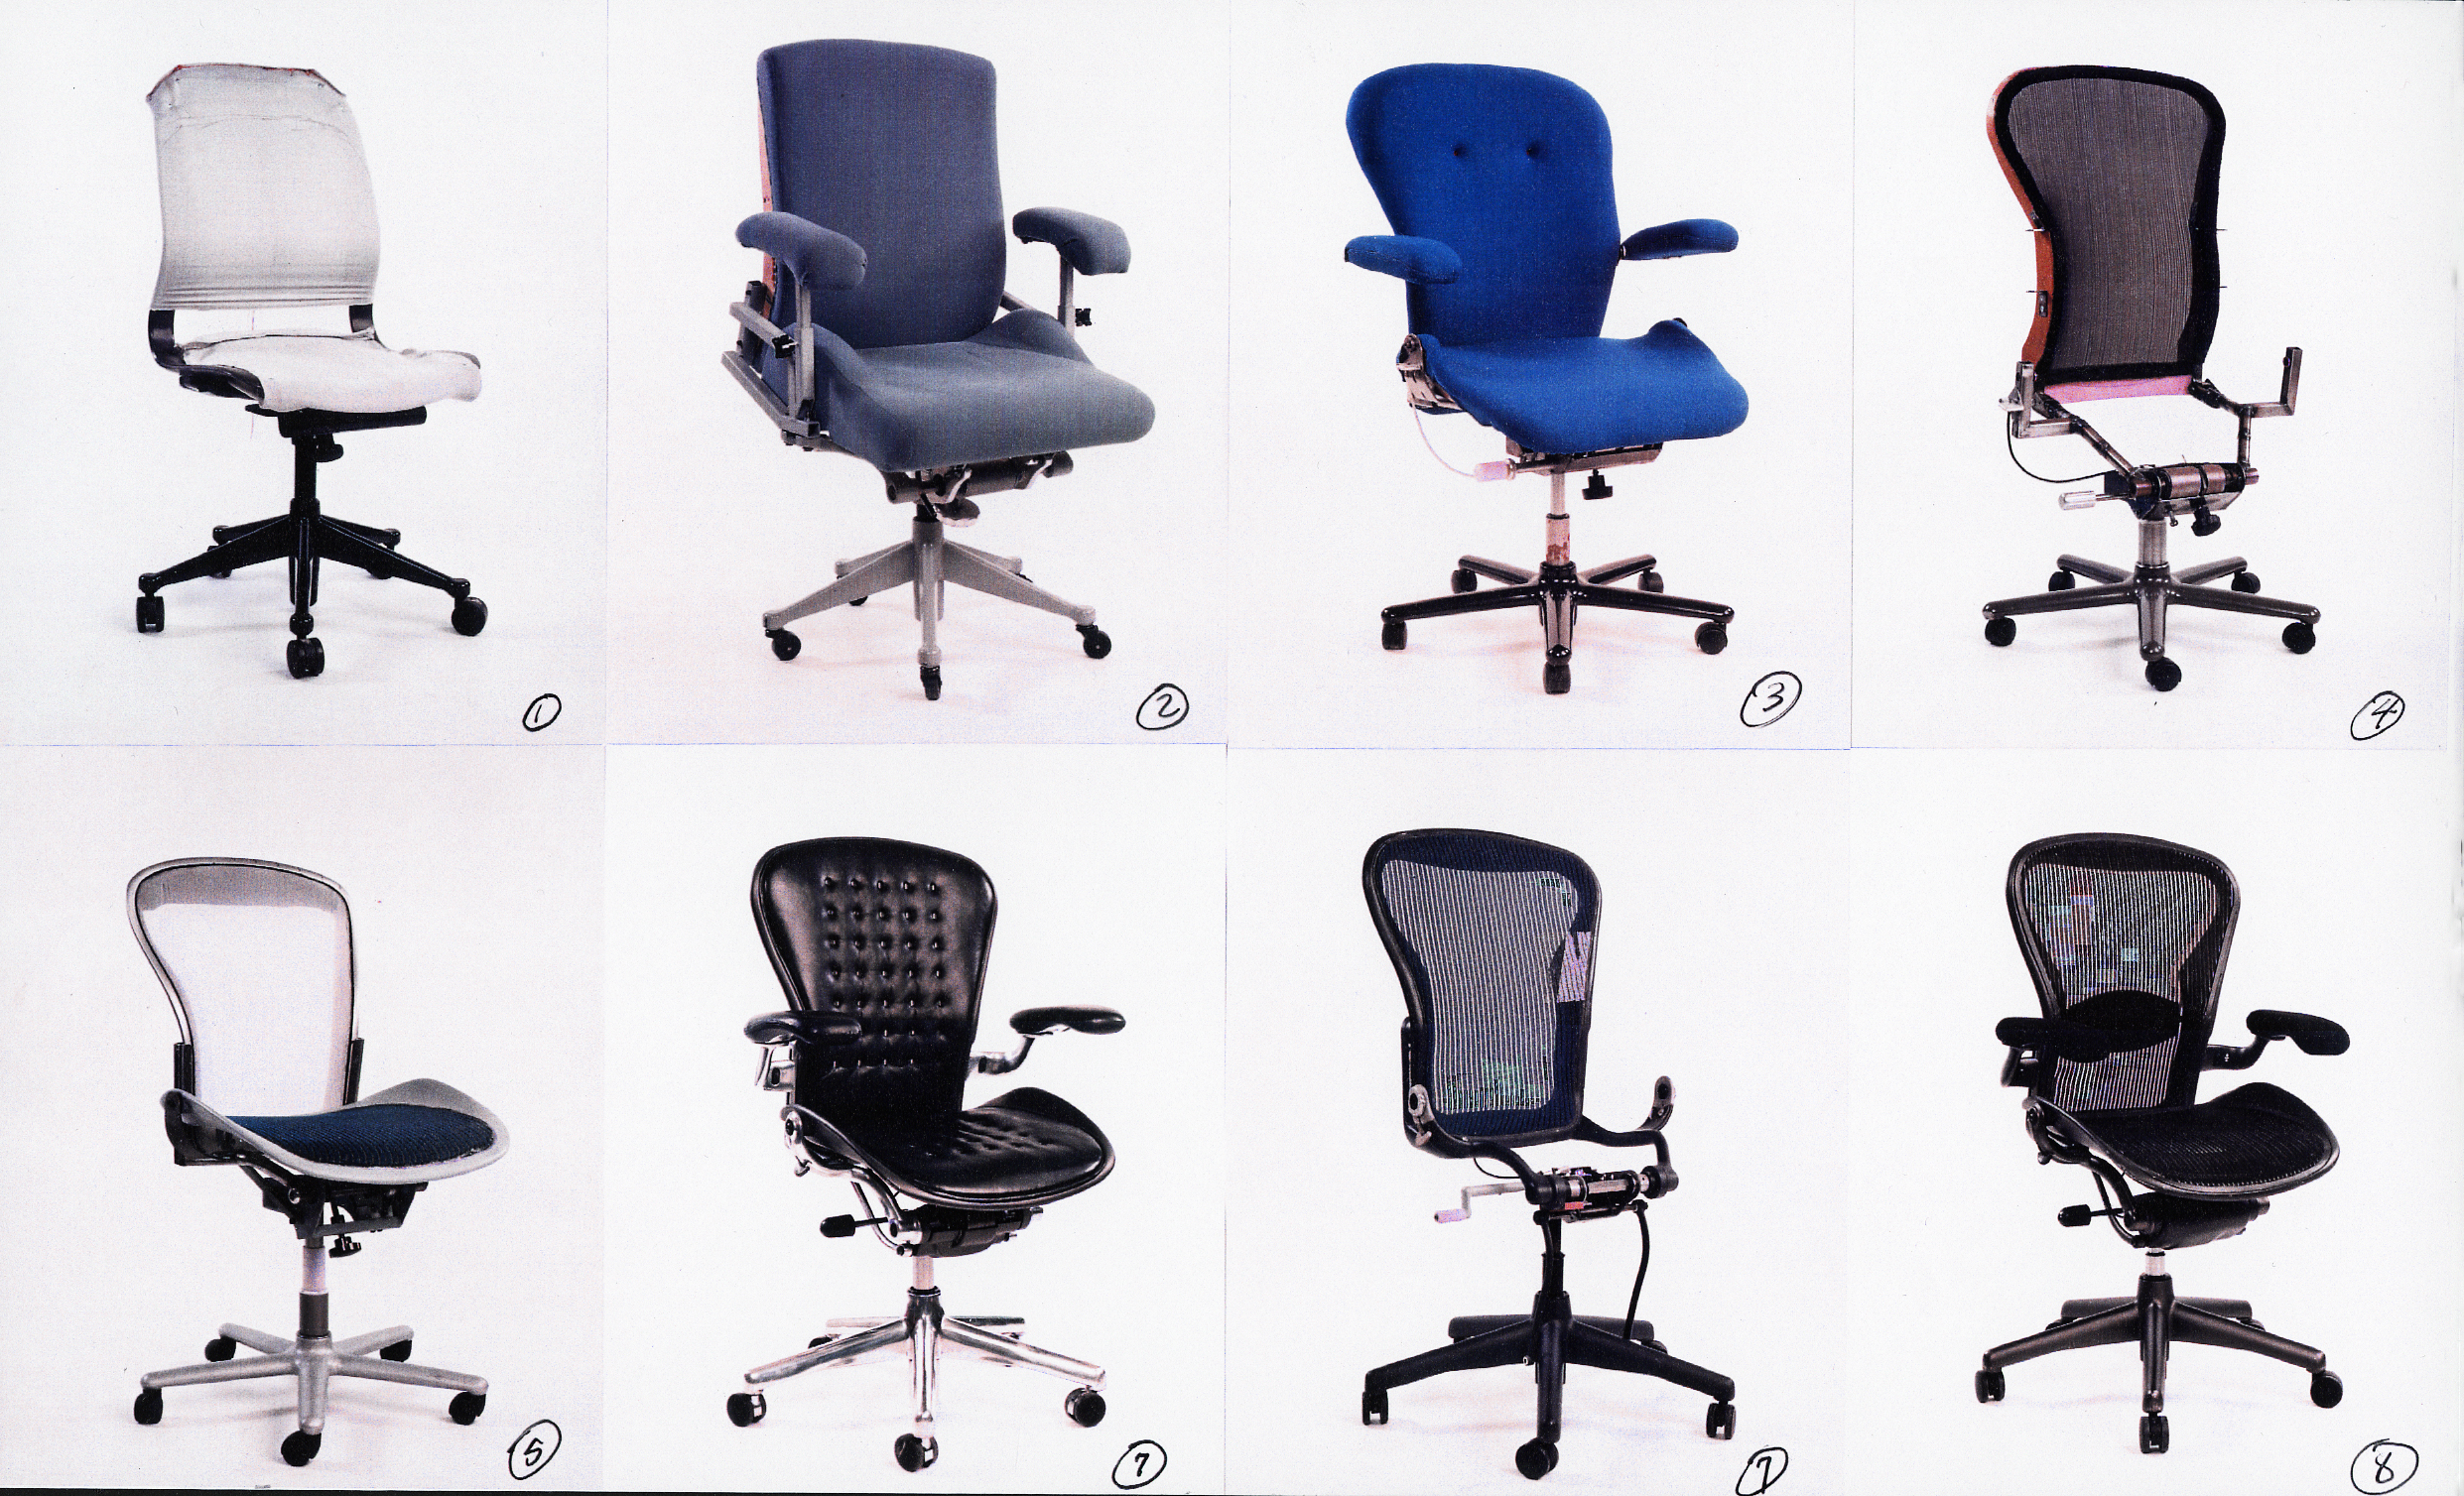 Dating website for video gamers chair